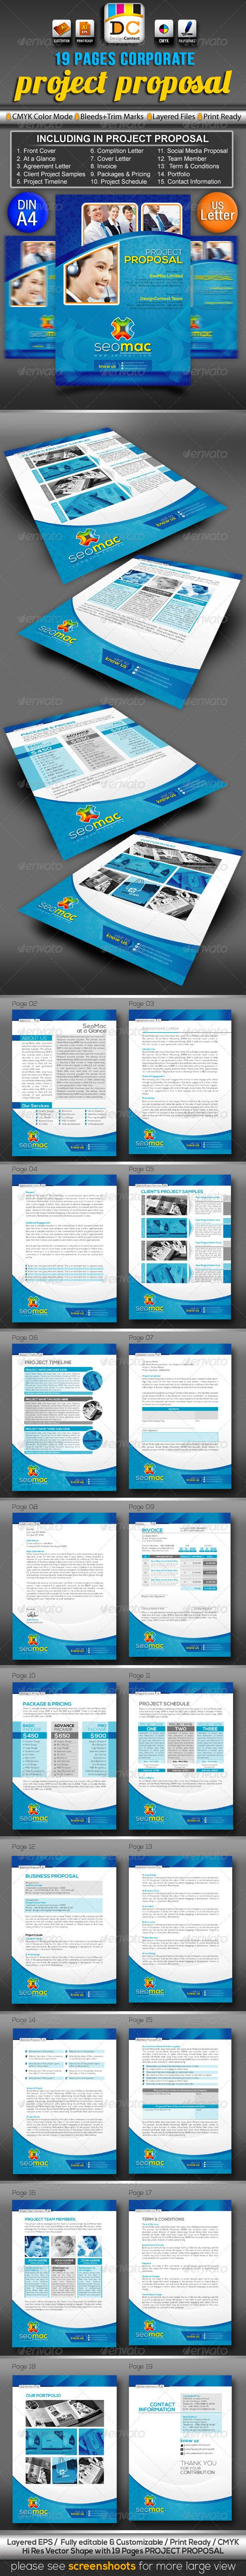 Free Construction Invoice Template  Best Print Templates Images On Pinterest  Print Templates  Invoice On Account with Define Cash Receipt Word Seomac Businessproject Proposal Graphicriver Seomac Businessproject  Proposal  Pages Professional Business Mail Invoice Pdf